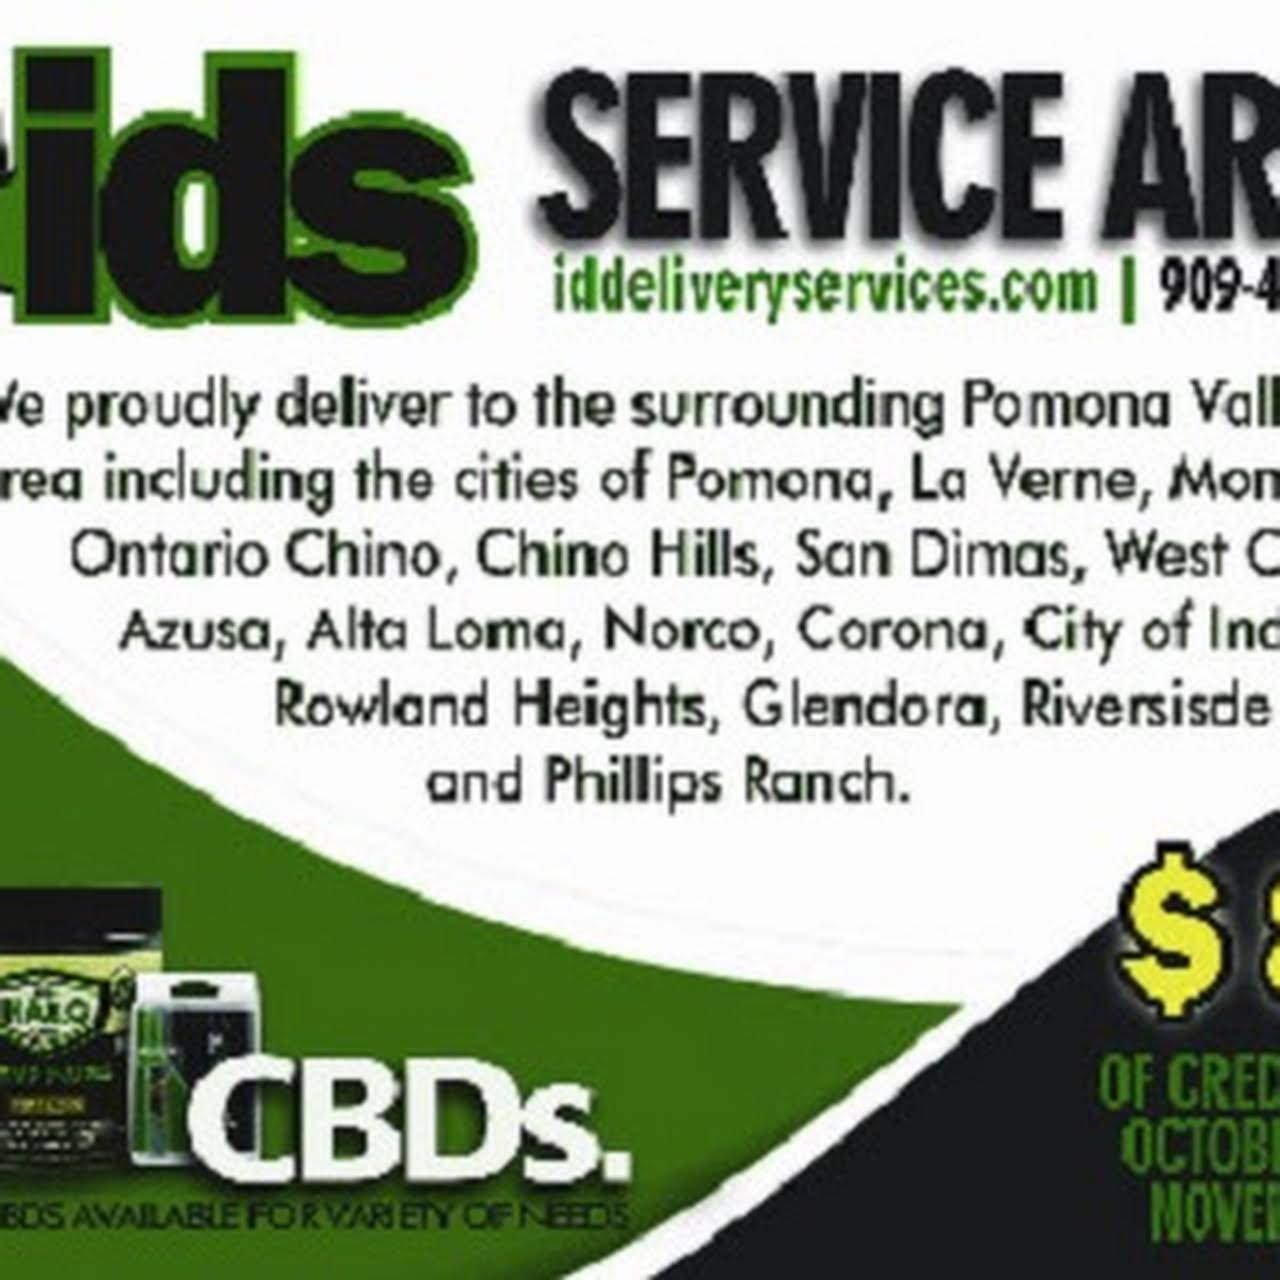 ID Delivery Services -ONLY Medical Moonrocks CBD Marijuana